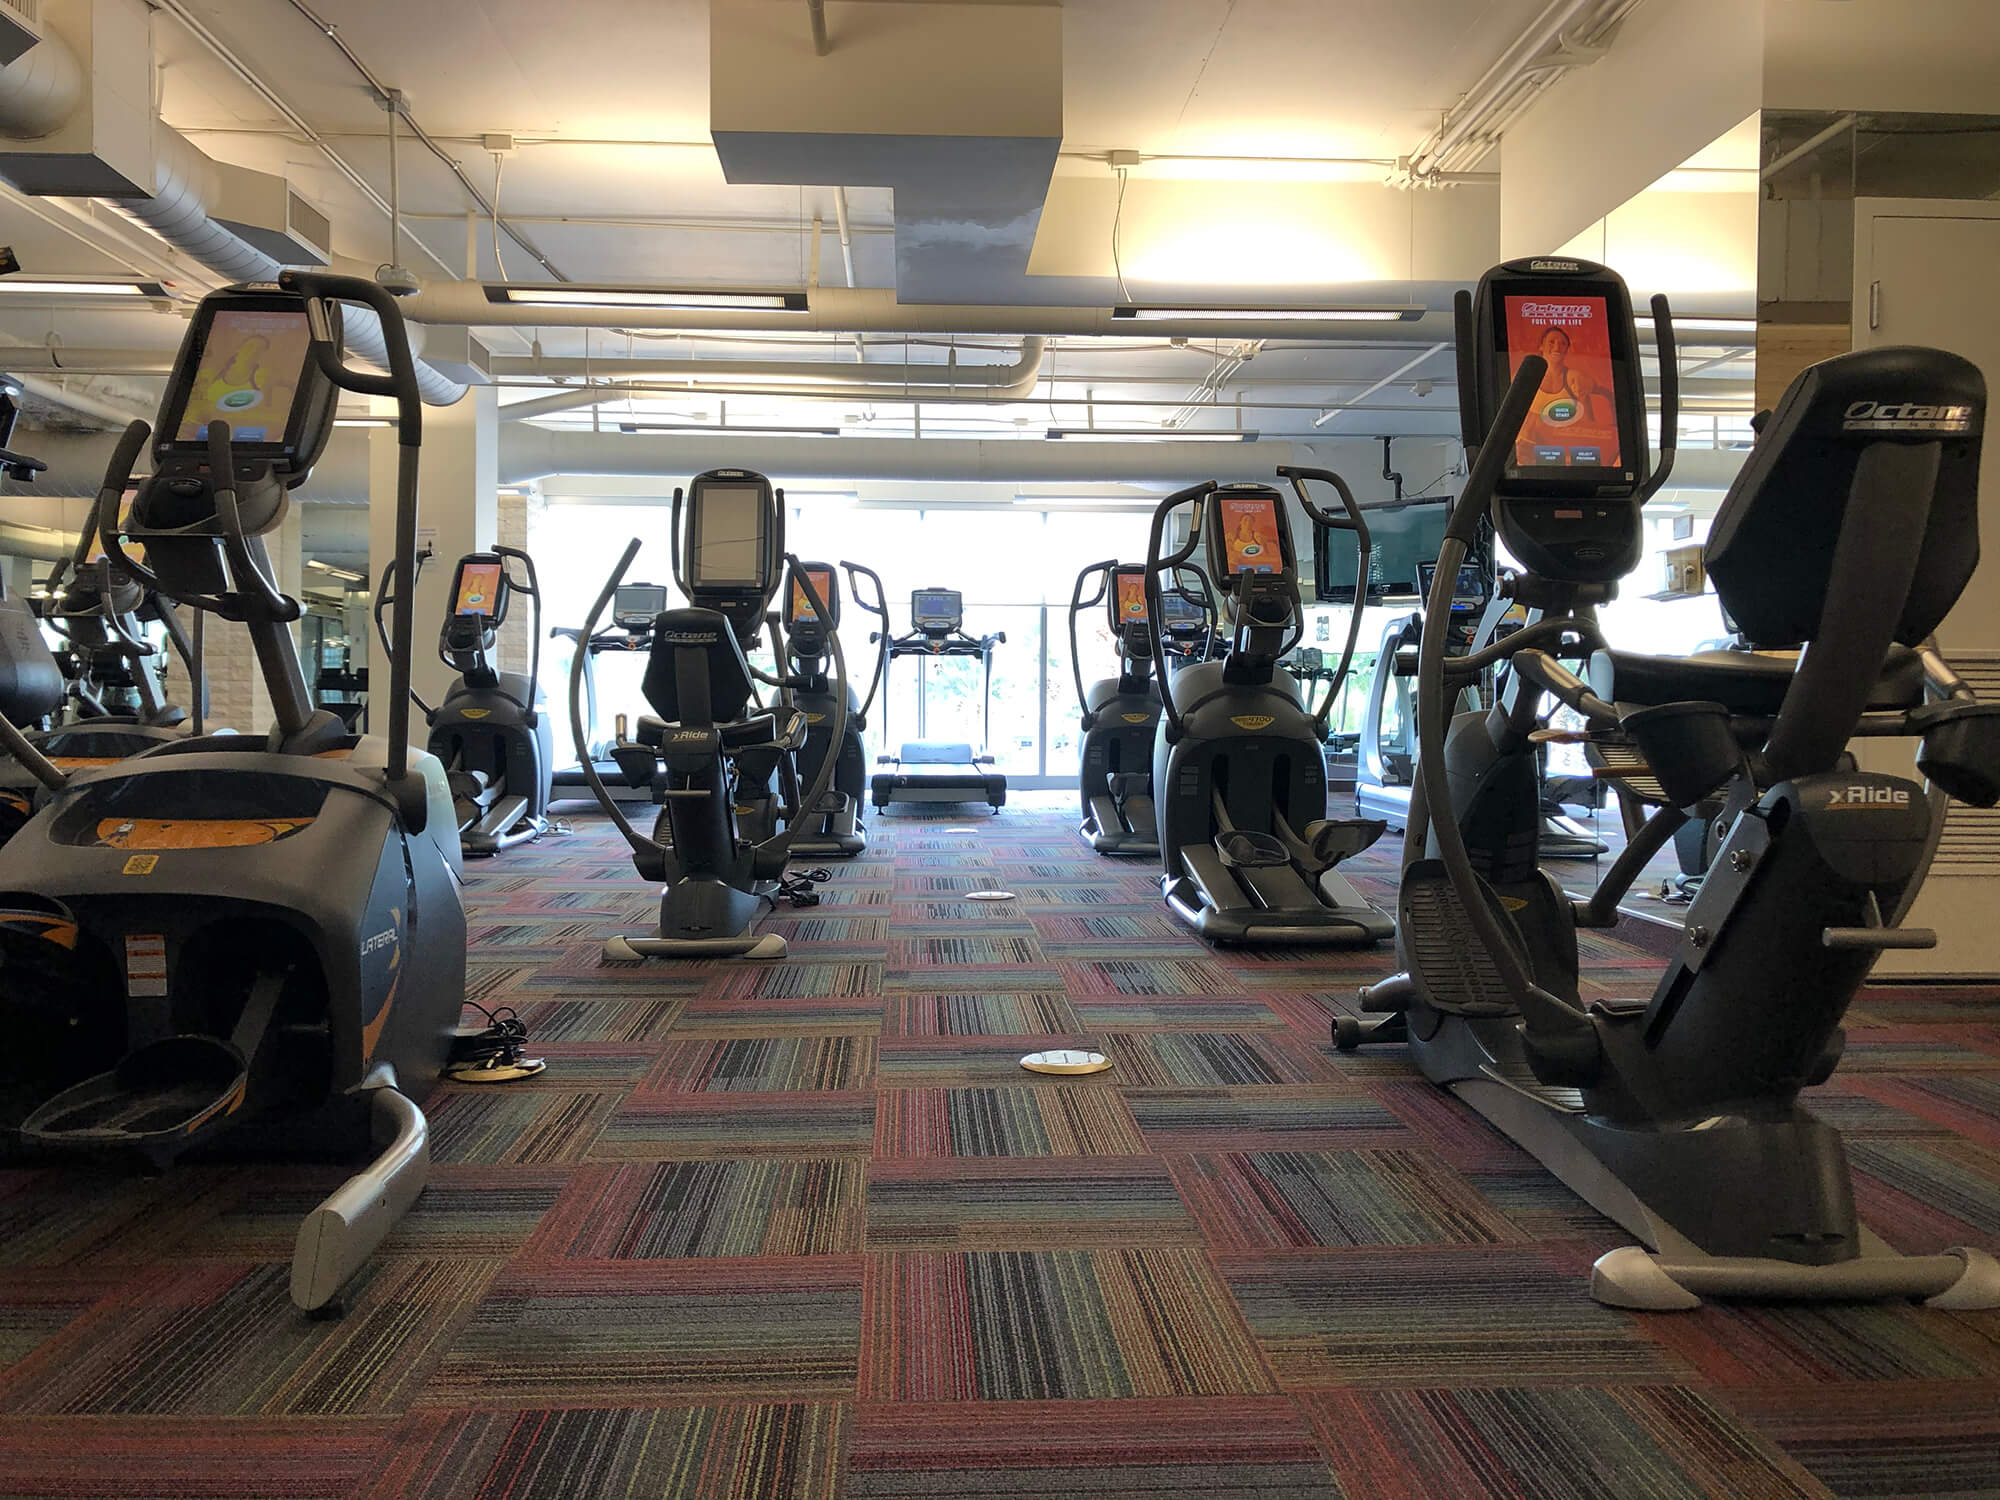 new fitness studio with exercise equipment